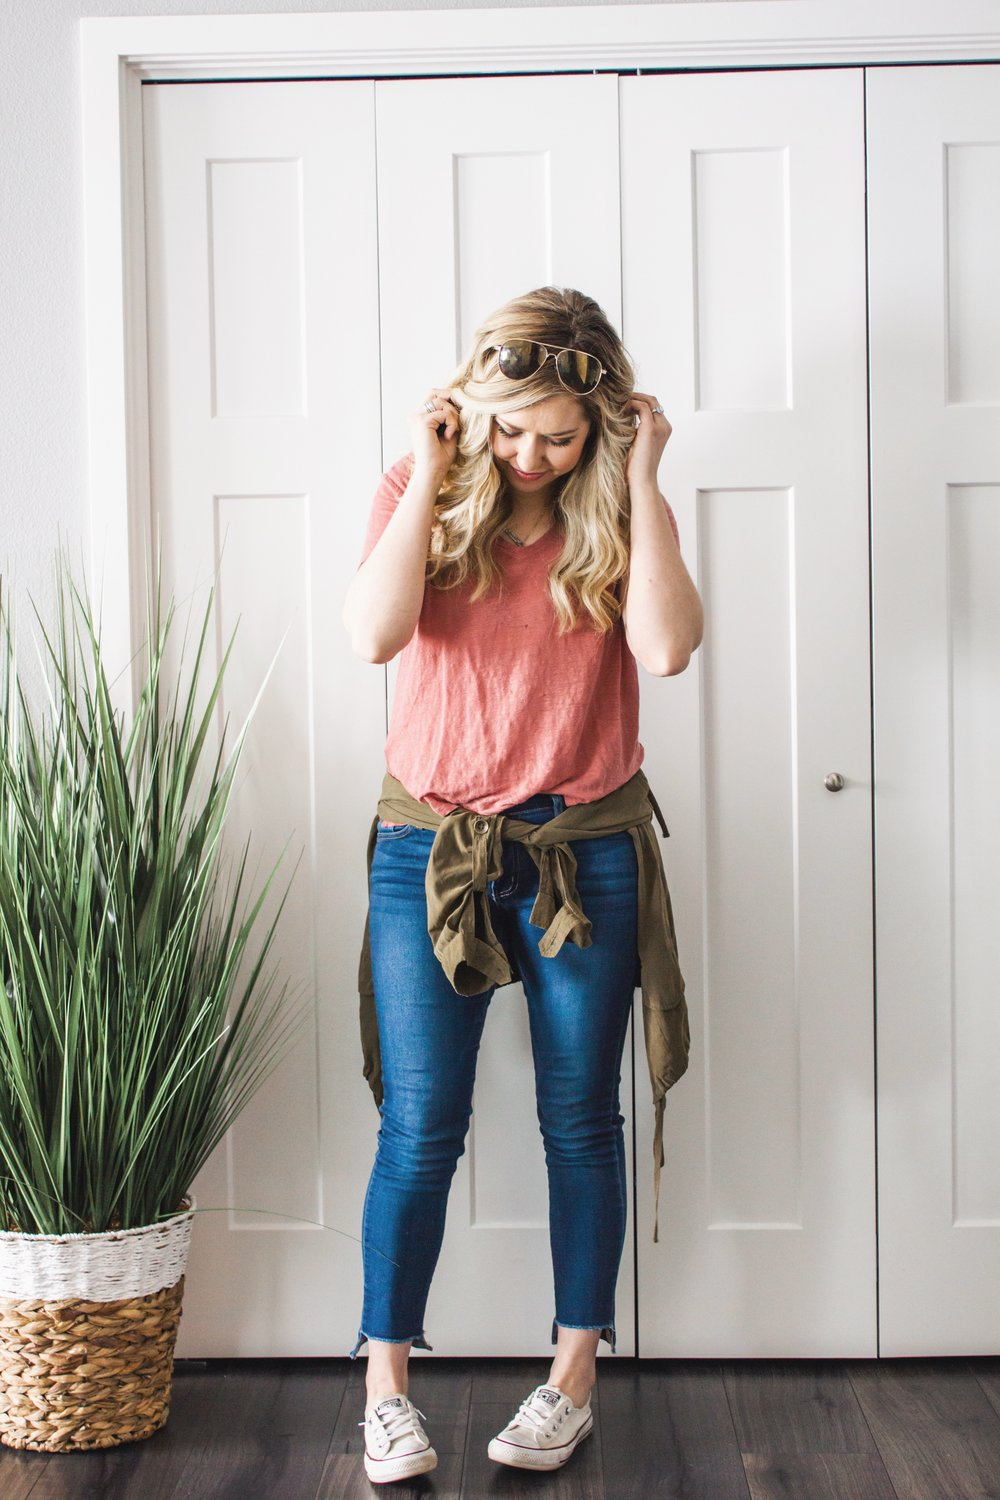 casual-jeans-and-tee-outfit-spring-03.JPG